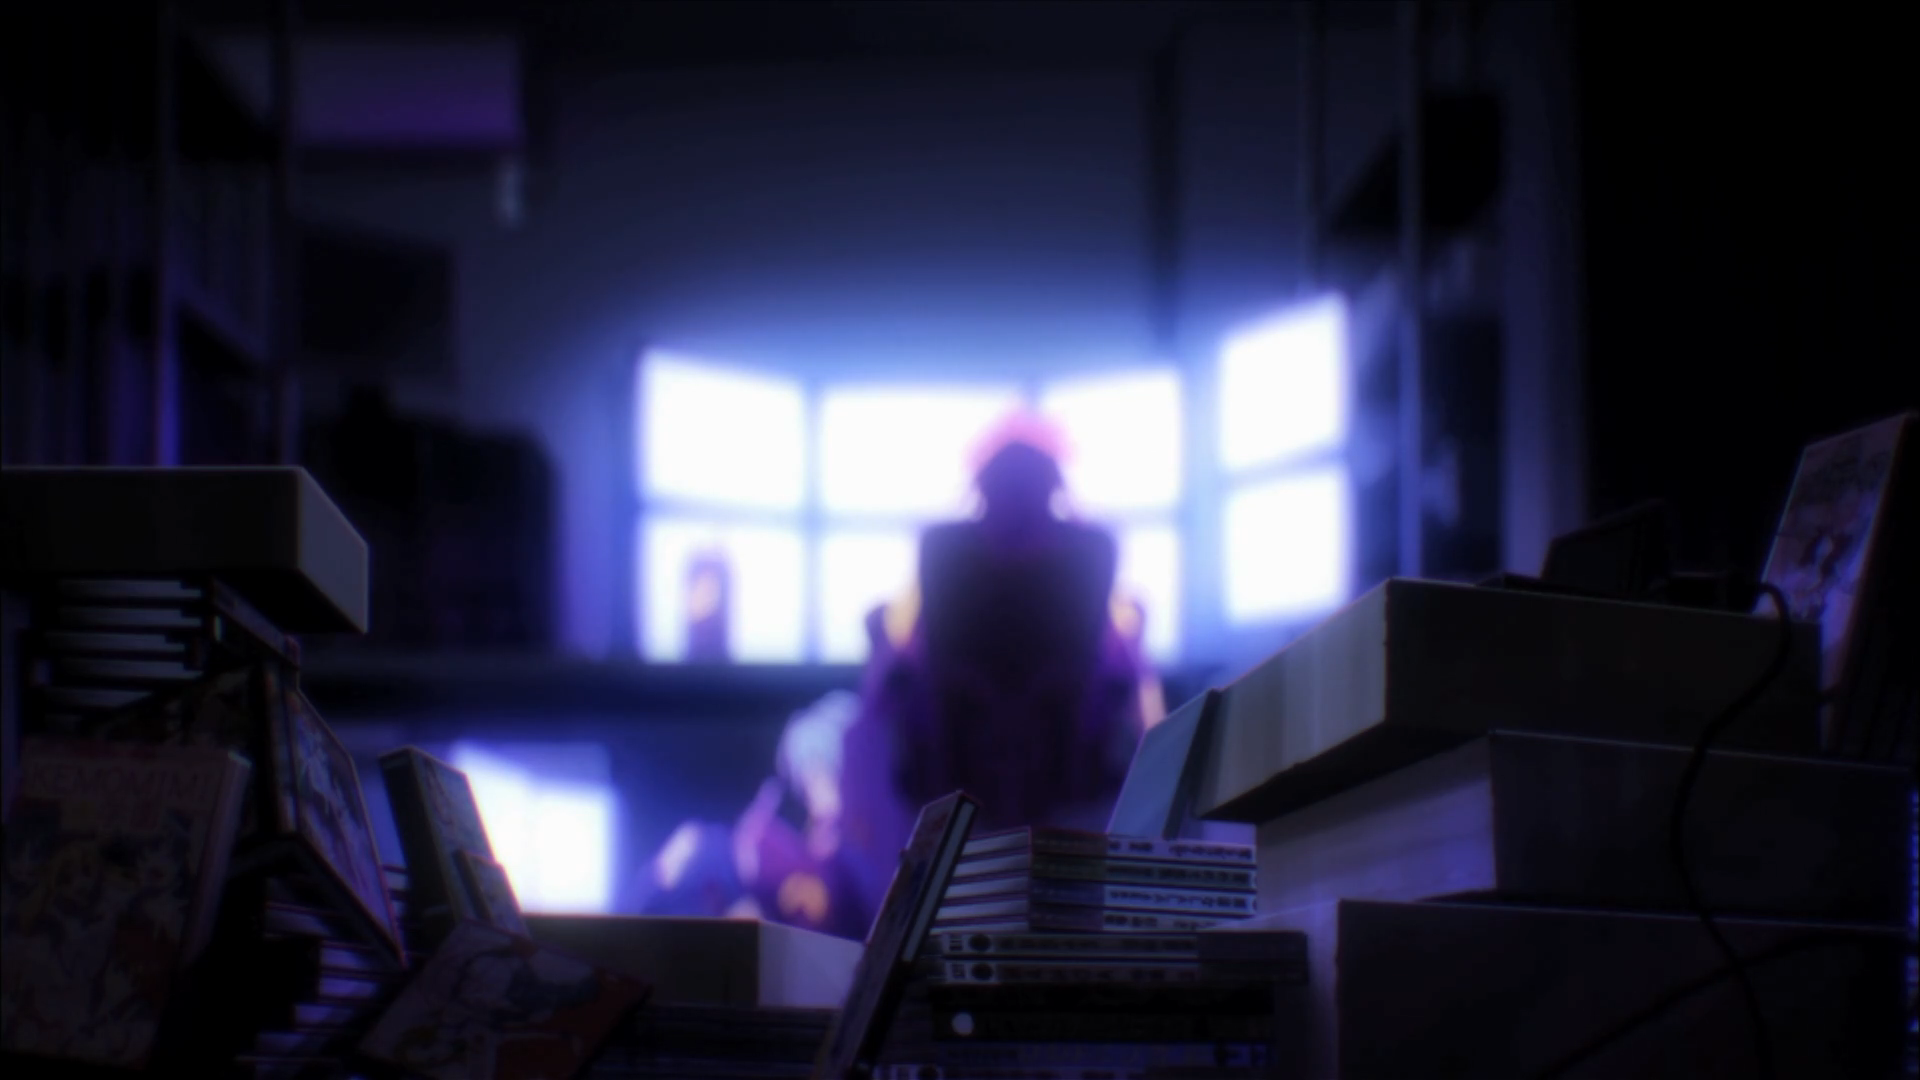 Felt Like Re-watching Ngnl And Captured This Wallpaper - No Game No Life First Scene , HD Wallpaper & Backgrounds